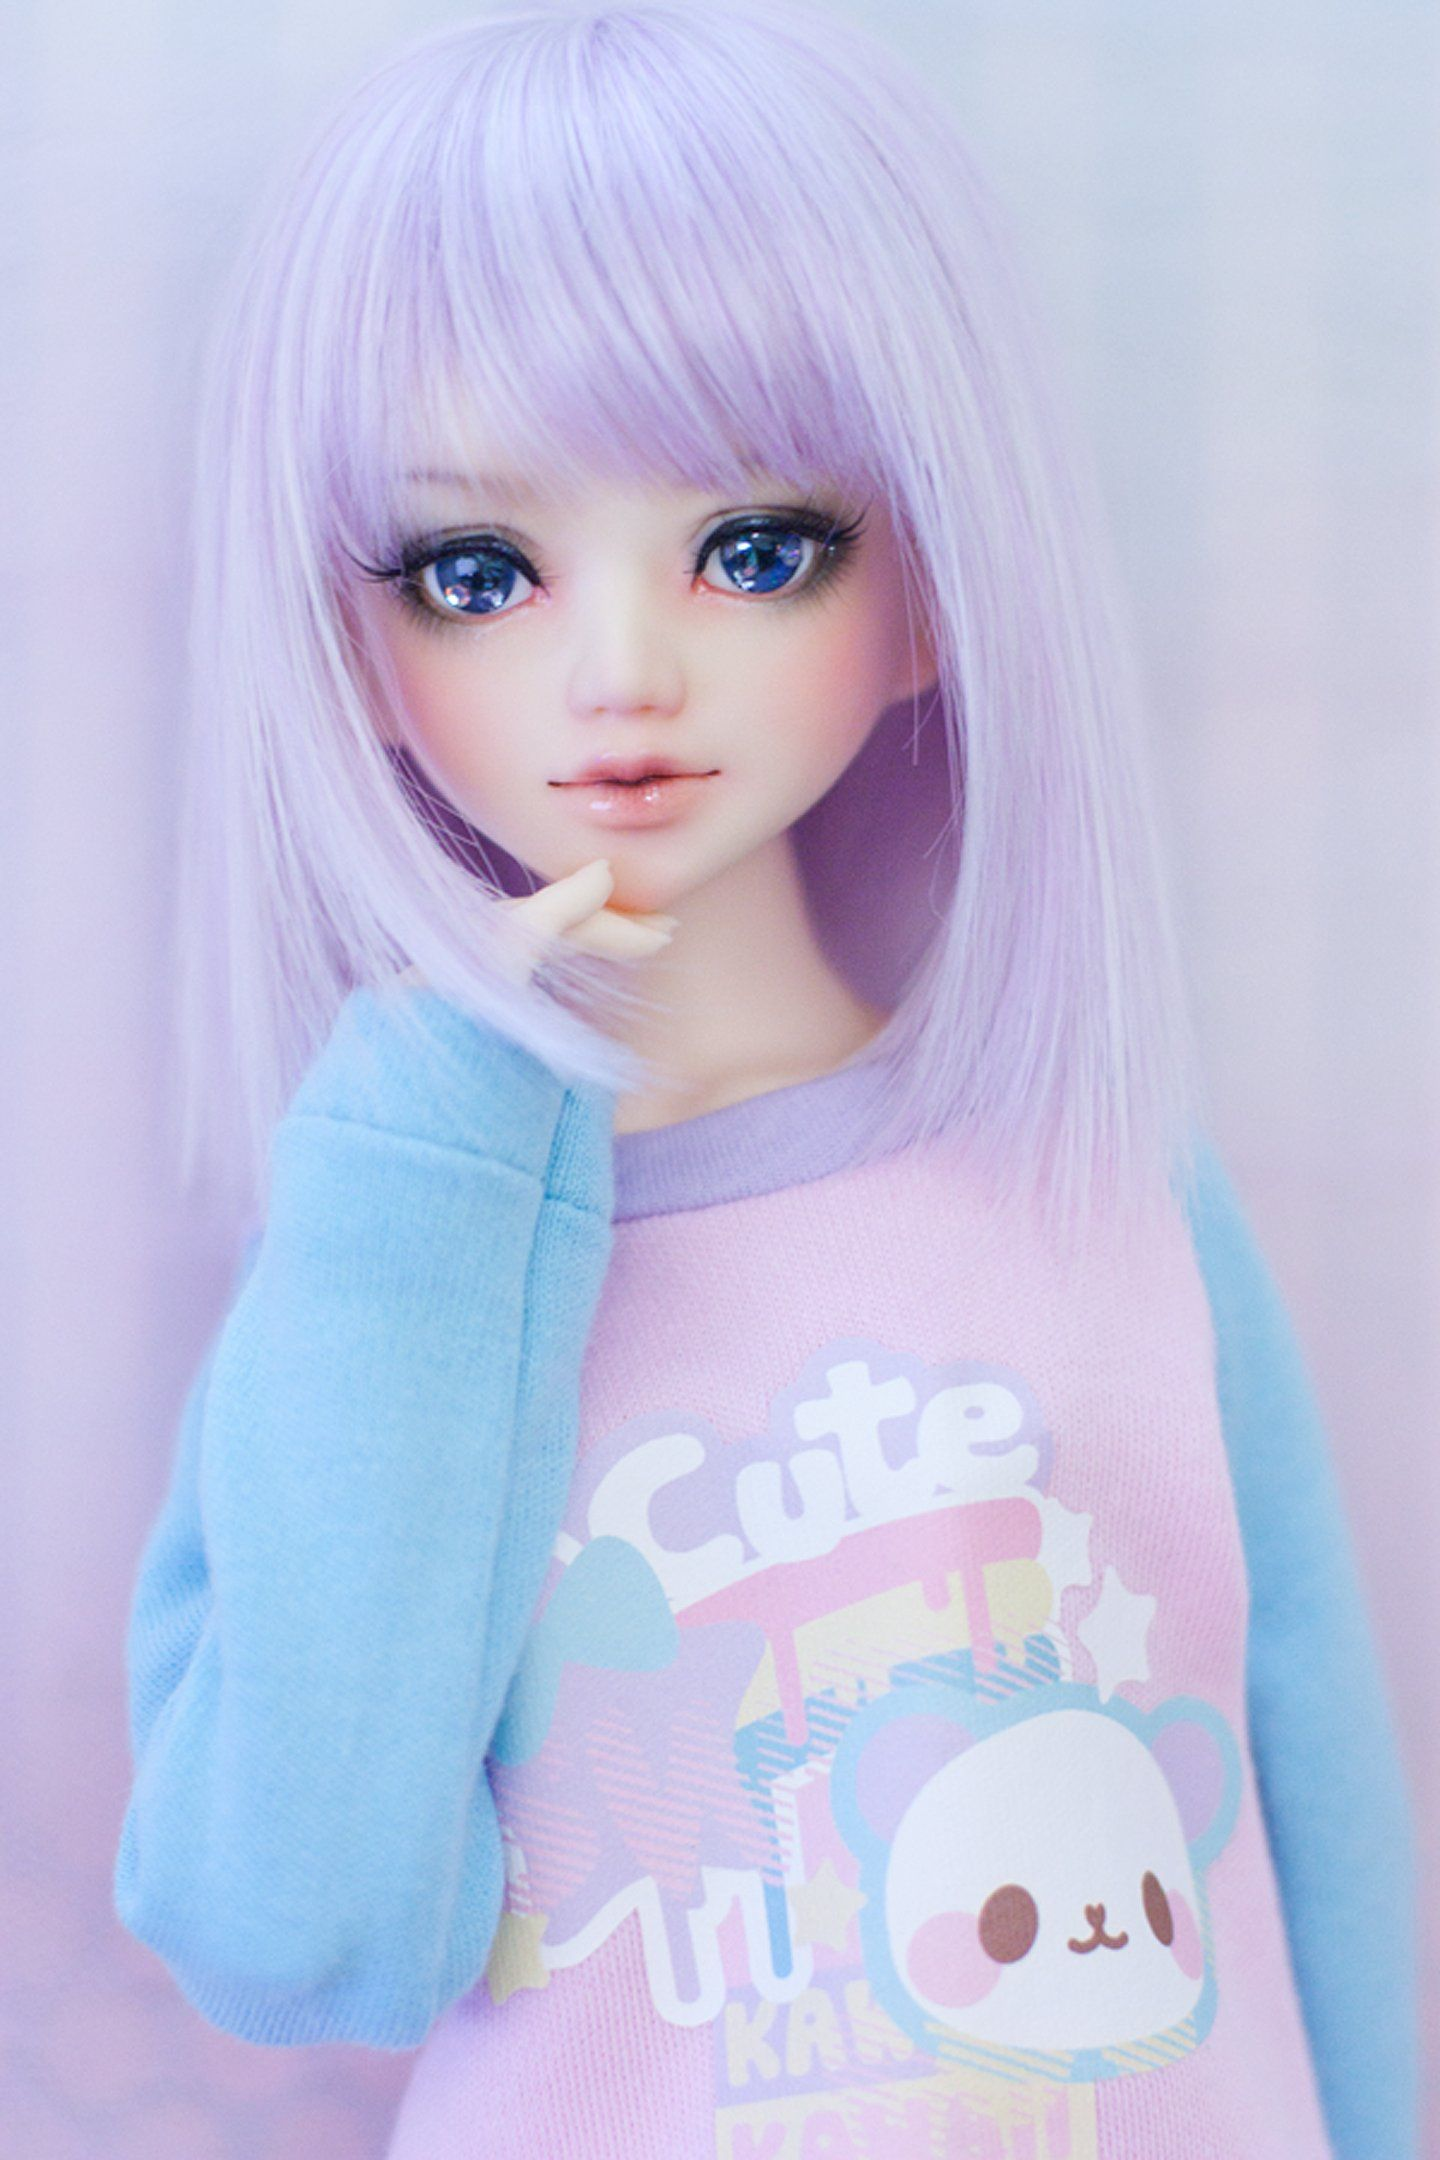 Cute Pretty Wallpapers Group (56+)